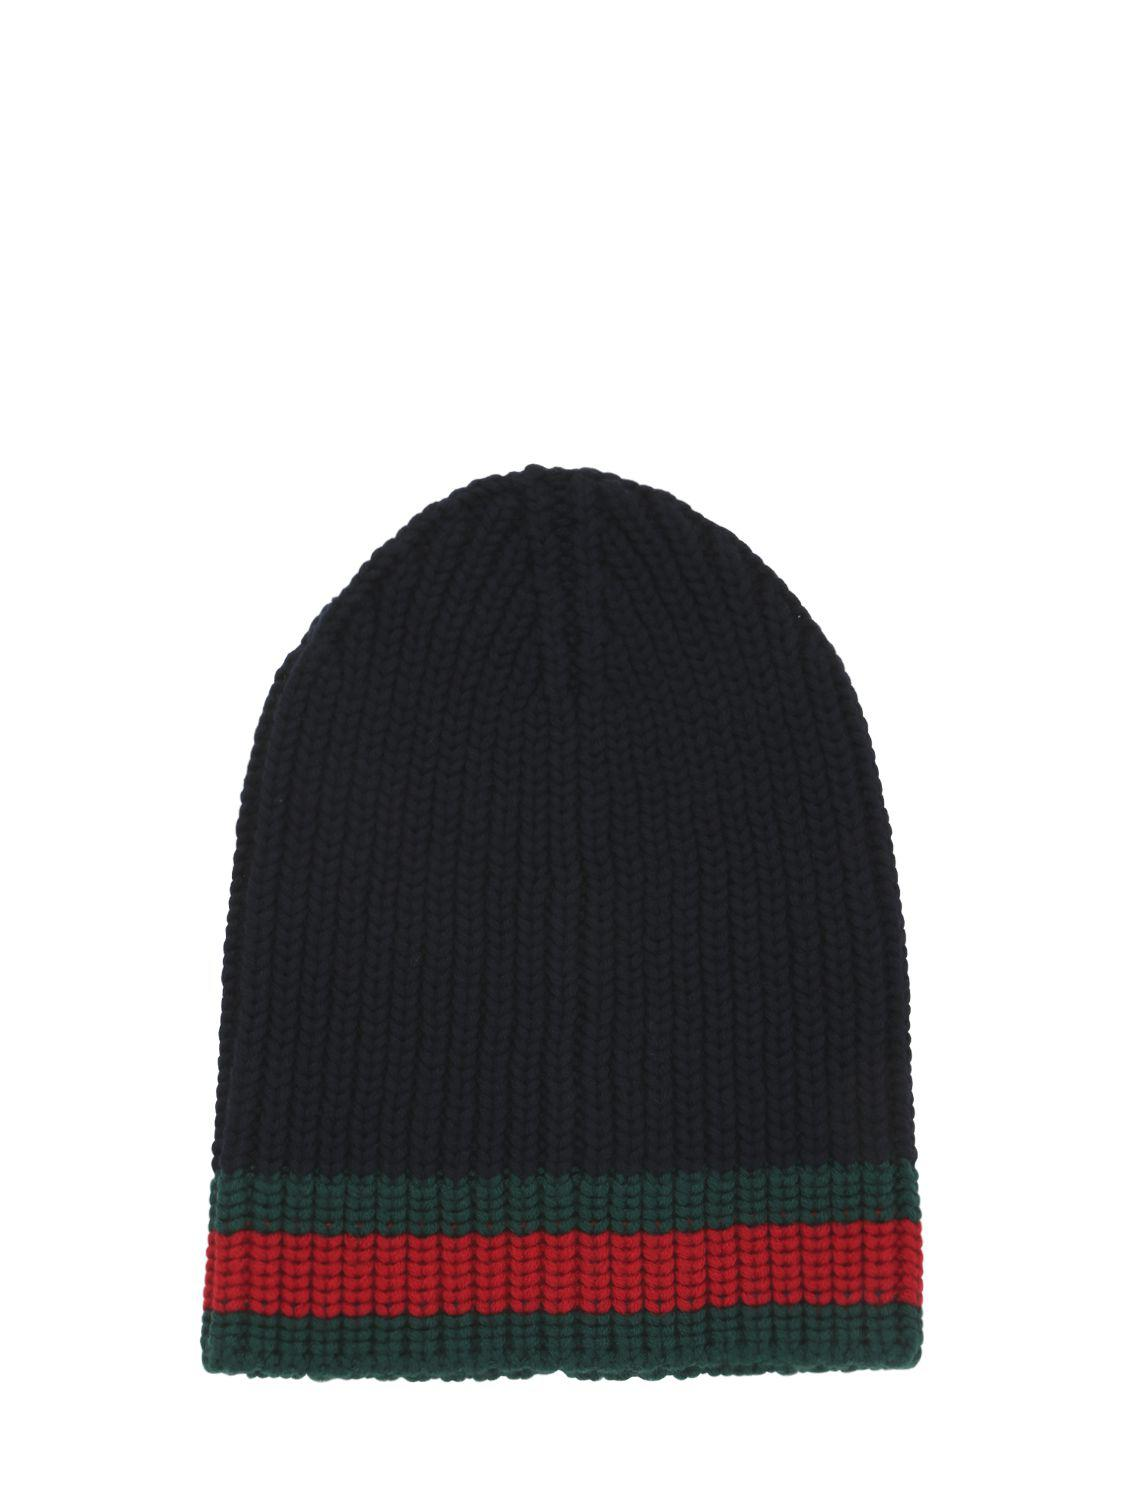 2fce1403e Gucci Web Wool Cable Knit Beanie Hat in Blue for Men - Lyst